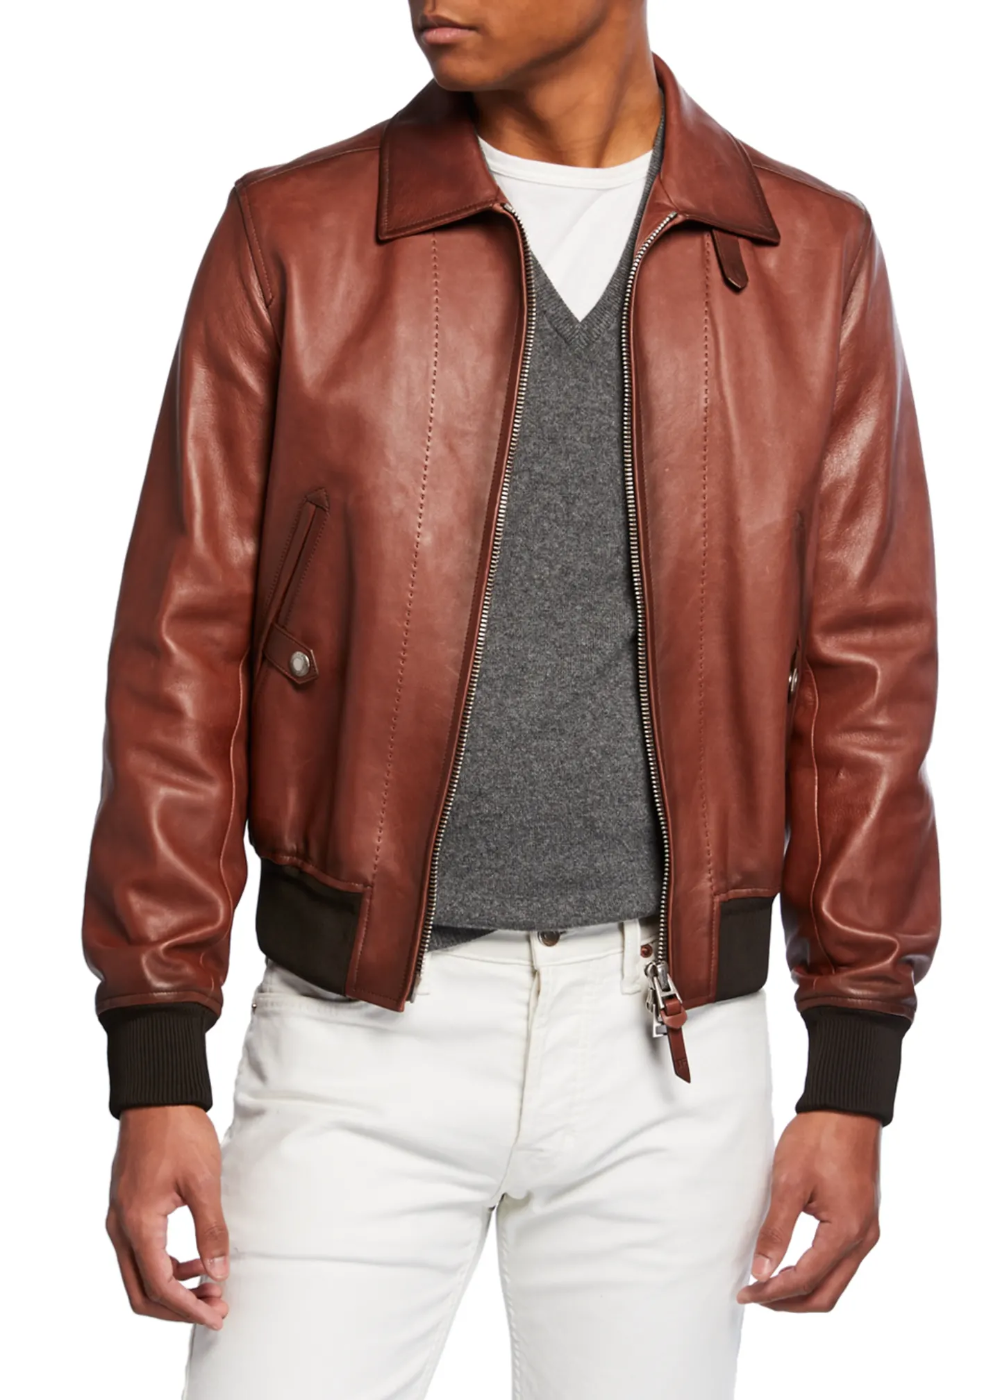 Tom Ford Men S Leather Zip Front Bomber Jacket Suede Bomber Jacket Men Tom Ford Jacket Leather Jacket Style [ 1400 x 1000 Pixel ]